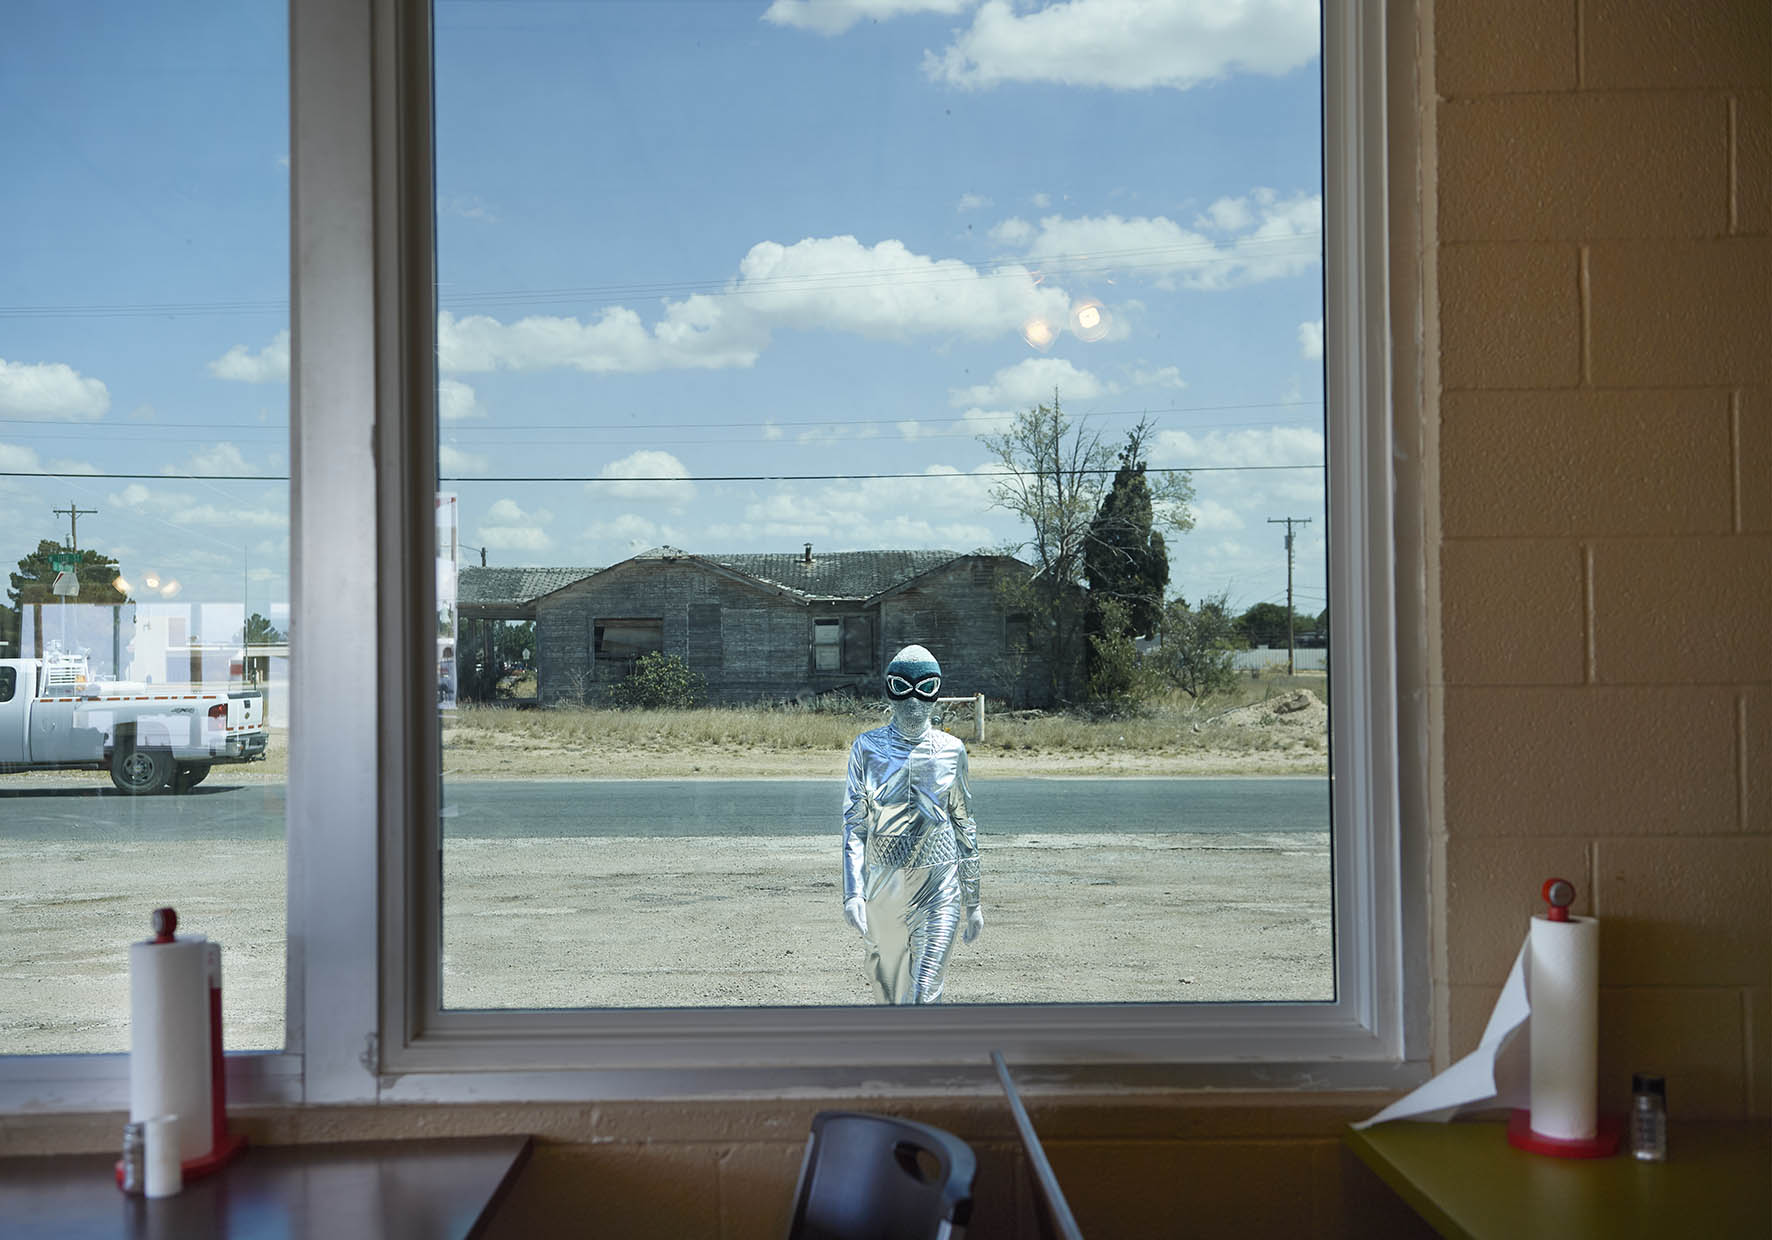 Selby´s Diner 1